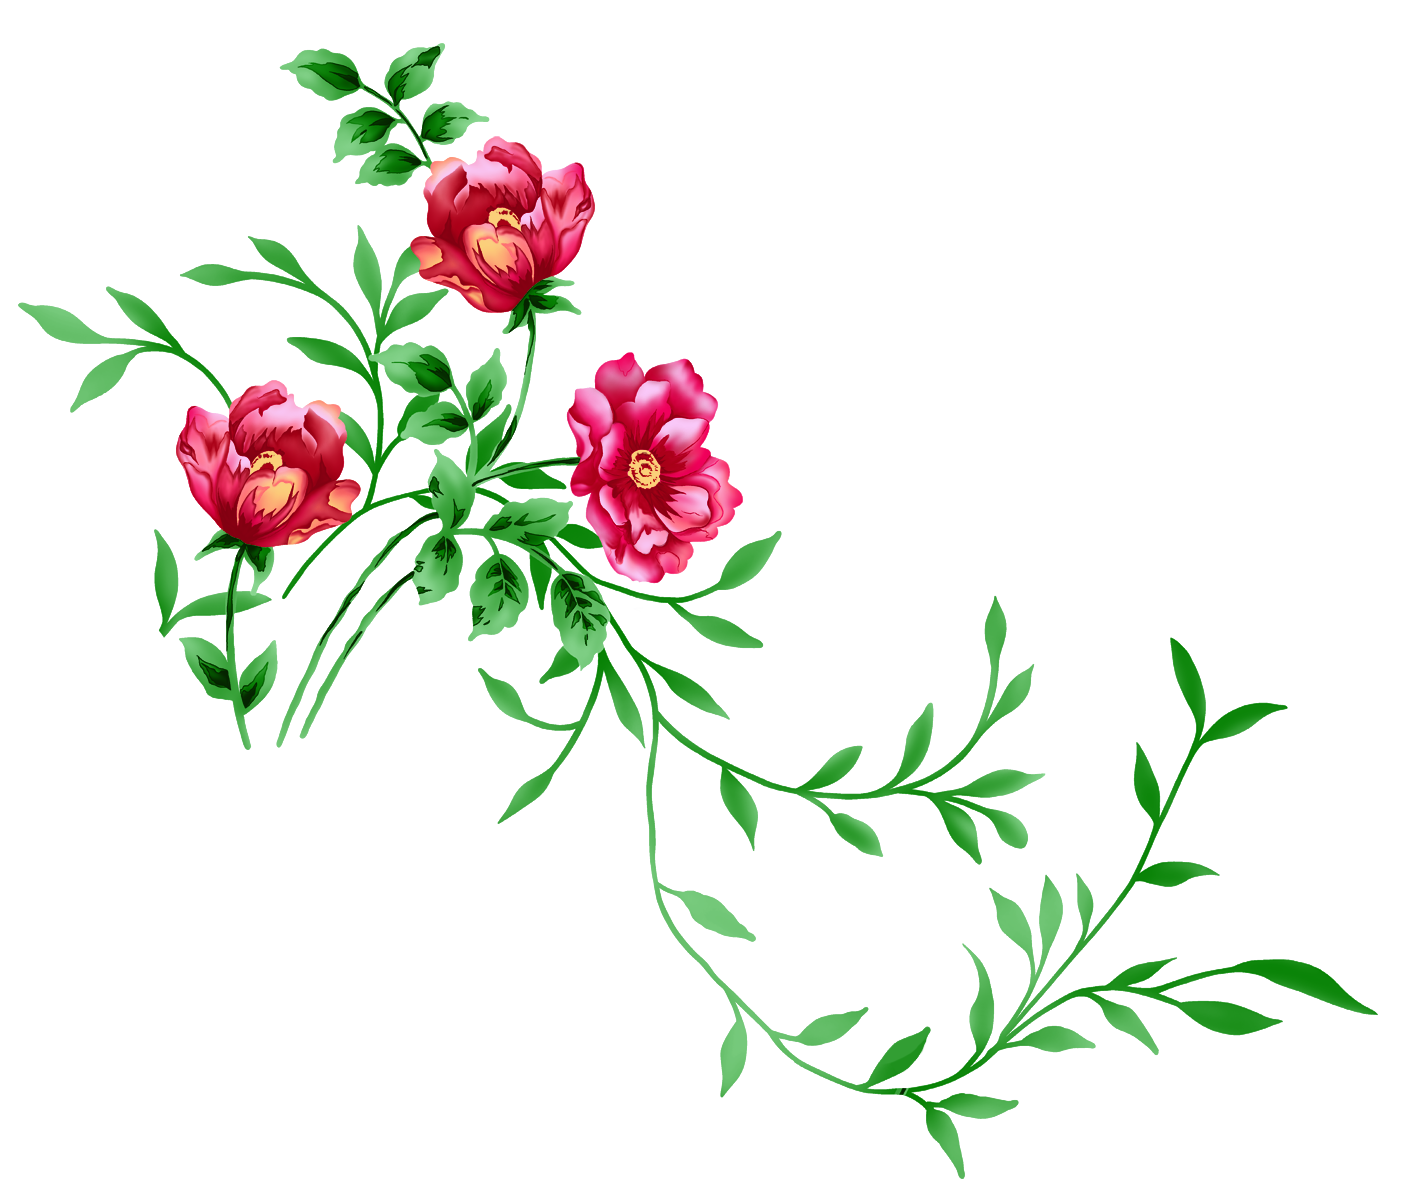 Red Floral Decor PNG Transparent Clipart.